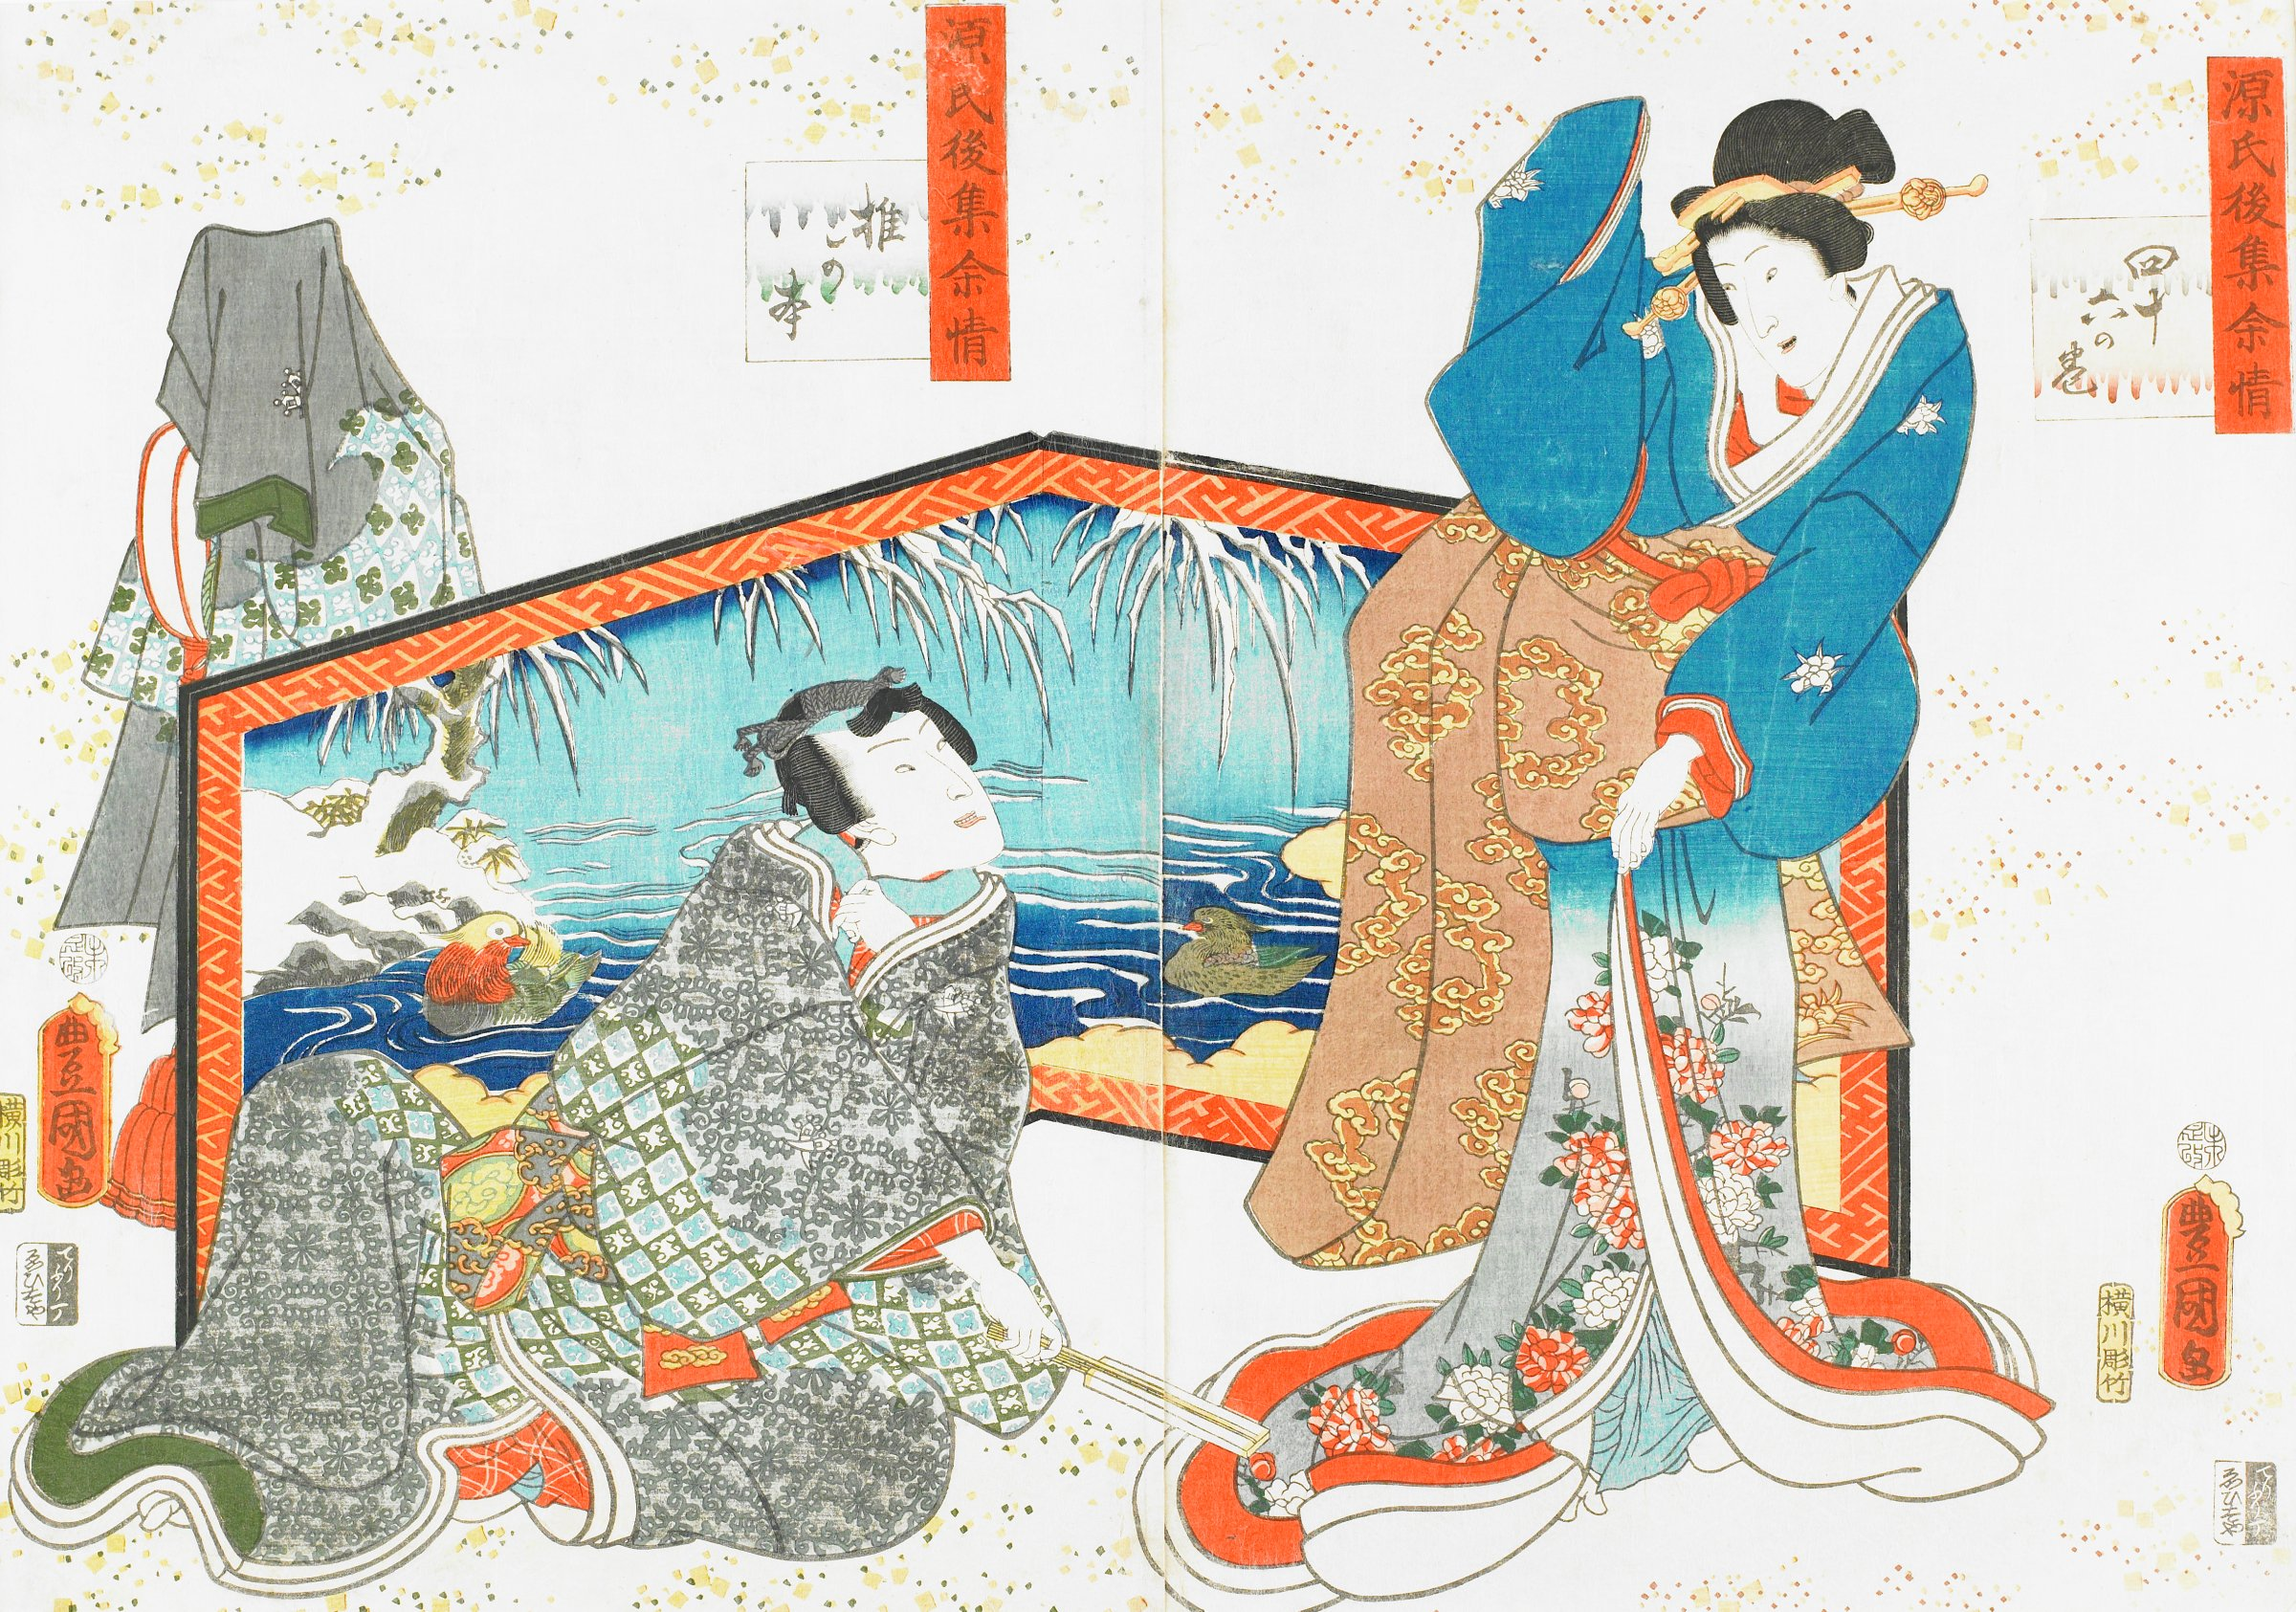 Scenes from the Tale of Genji: Beneath the Oak (Shiigamoto), Chapter 46, Utagawa Kunisada, Published by Ebisuya Terifuricho, ink and color on paper, diptych